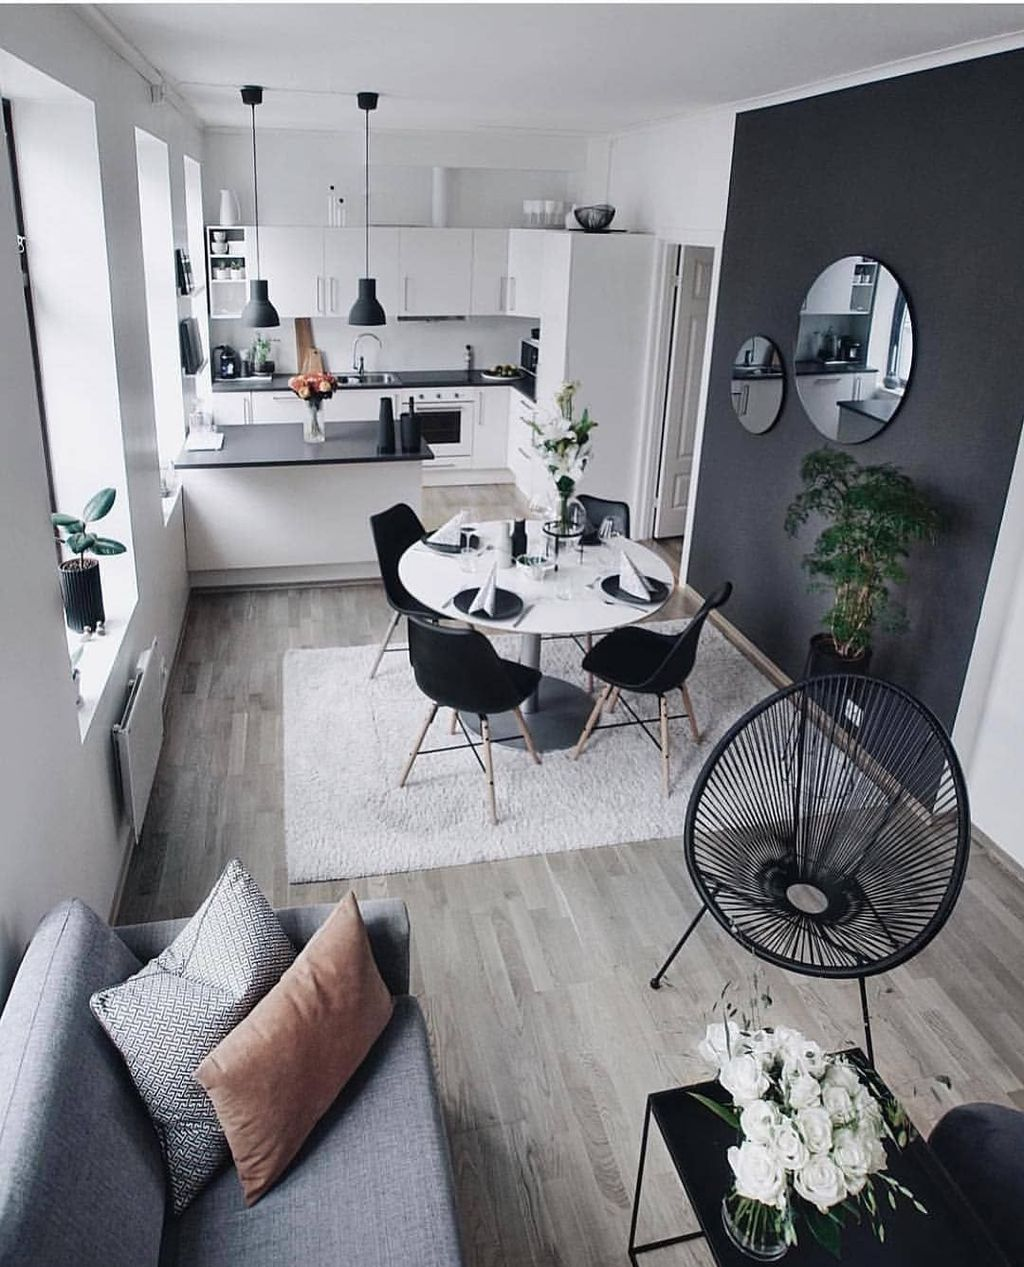 9 Inspiring Living Room Ideas For Small Space   HOMYHOMEE ...